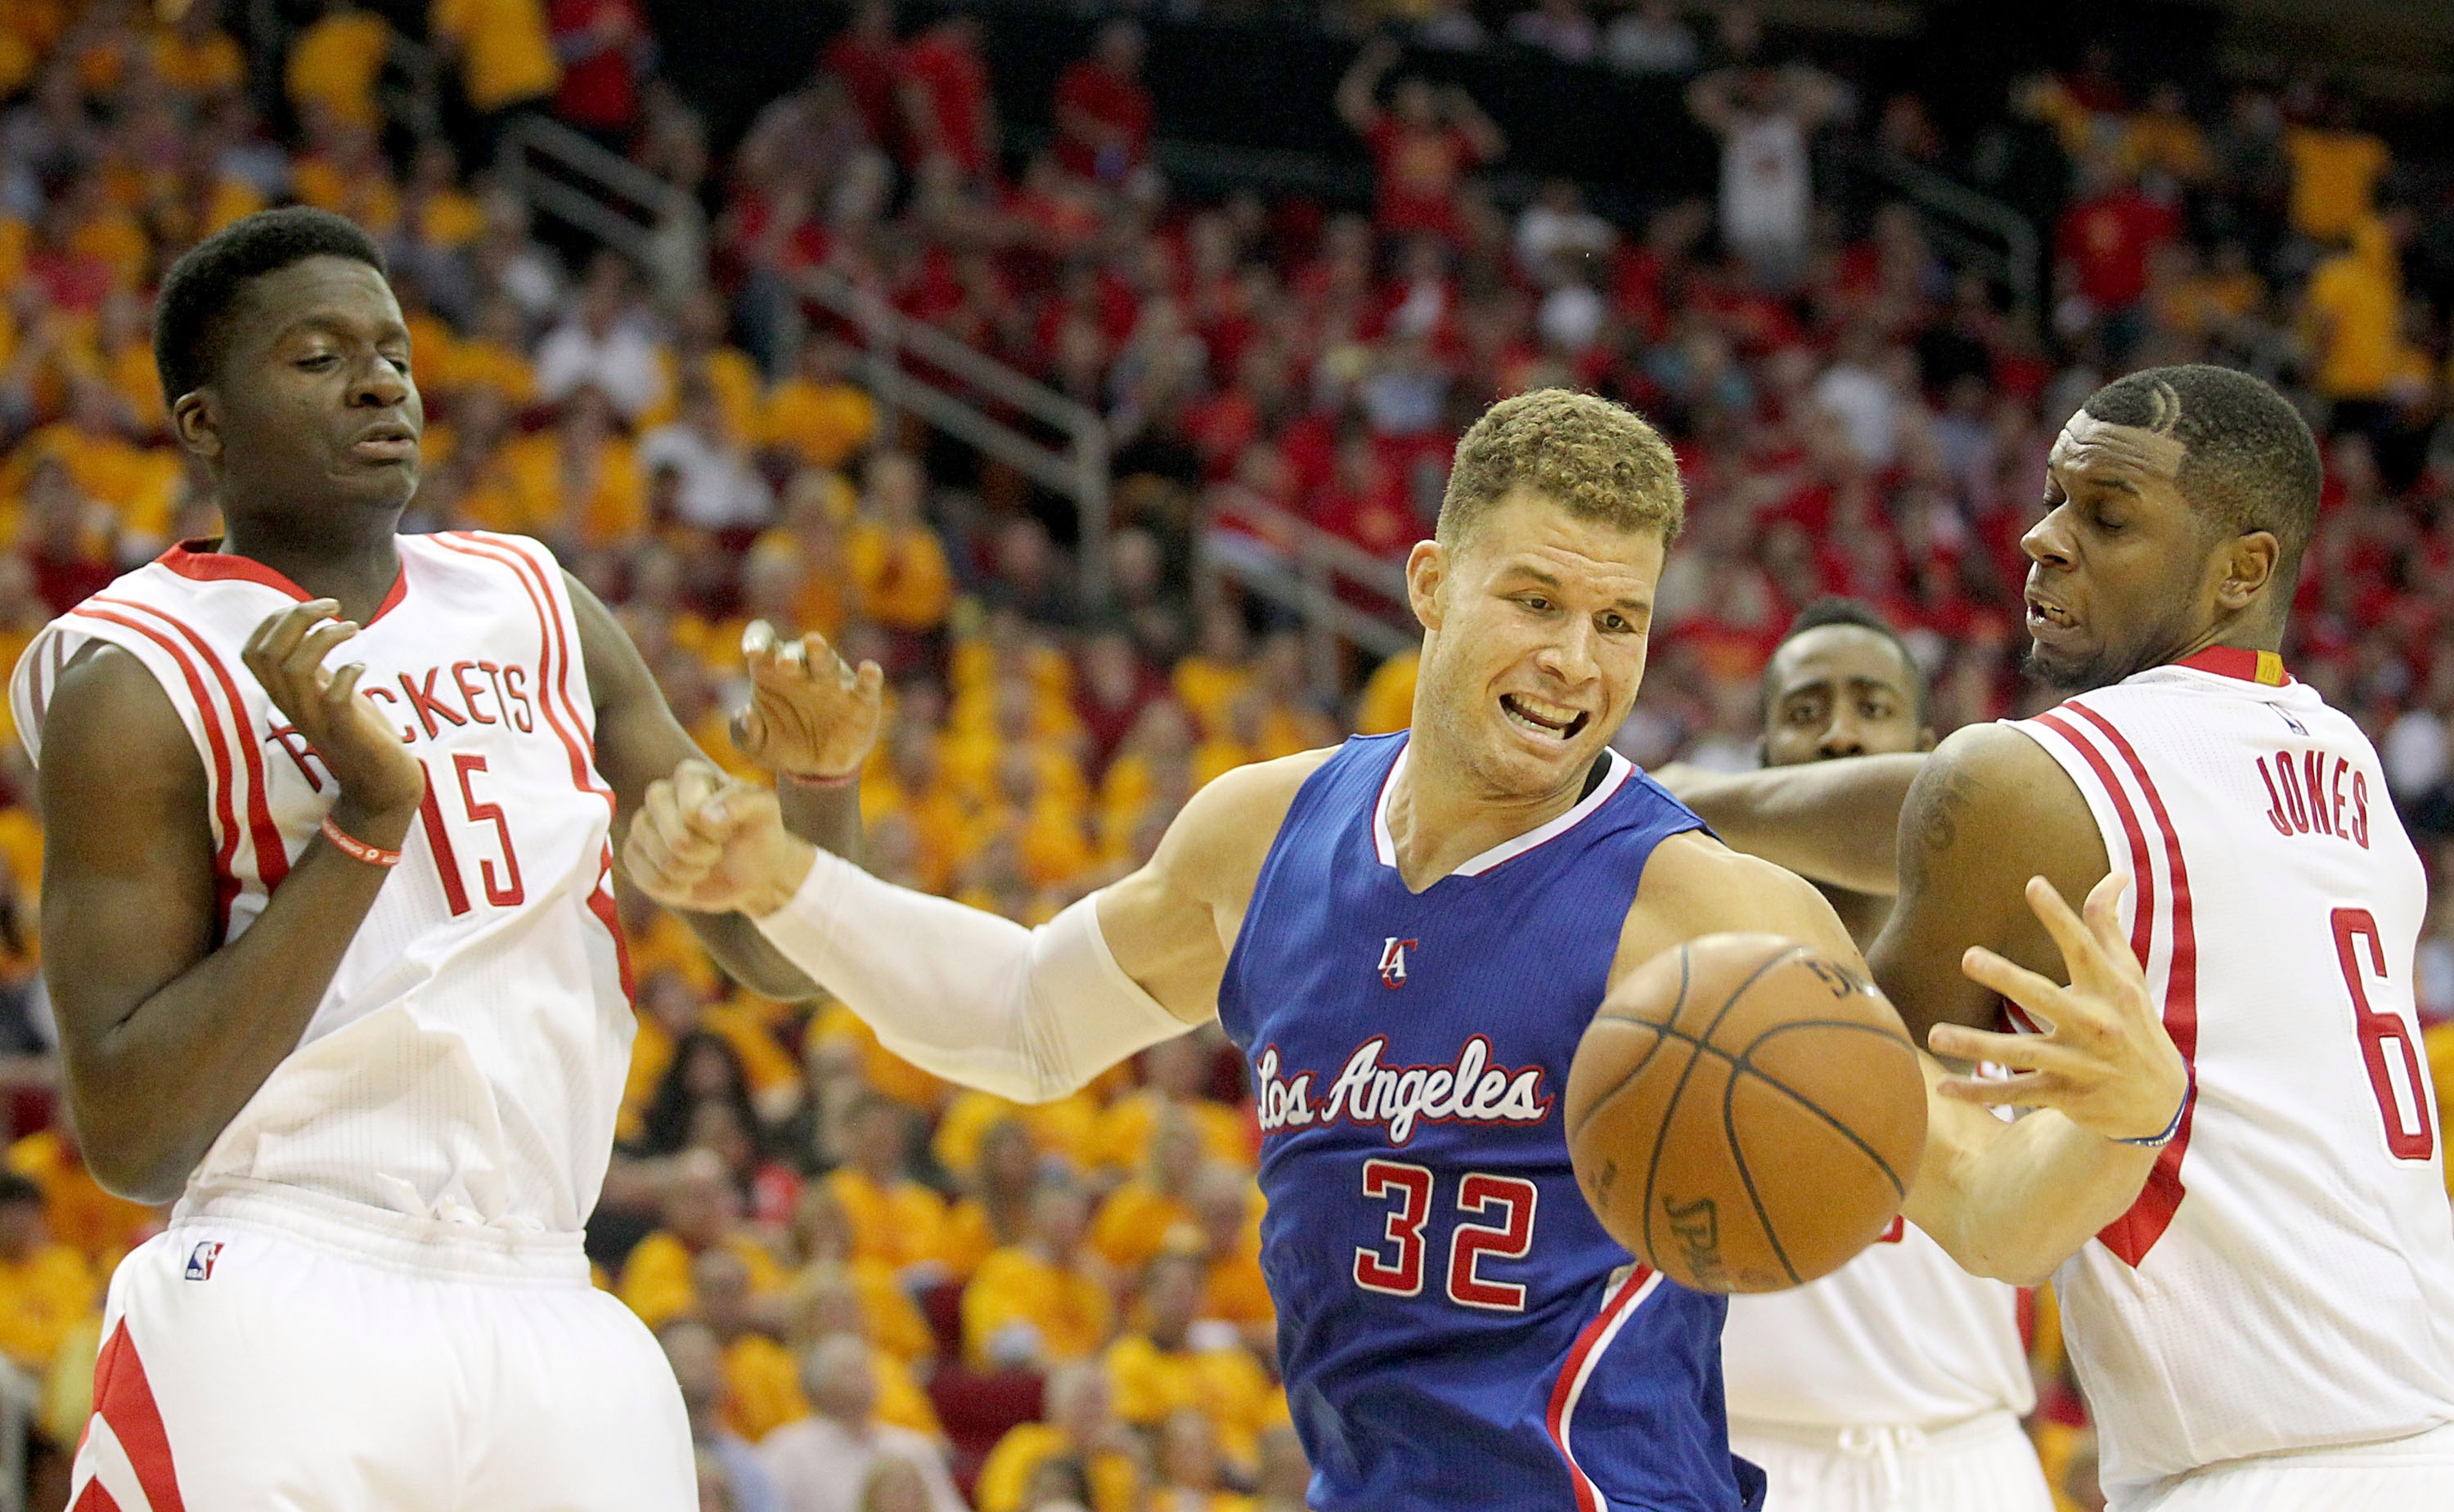 LA Clippers vs. Houston Rockets: TV Channel, Prediction, Point Spread, Over/Under For Game 6